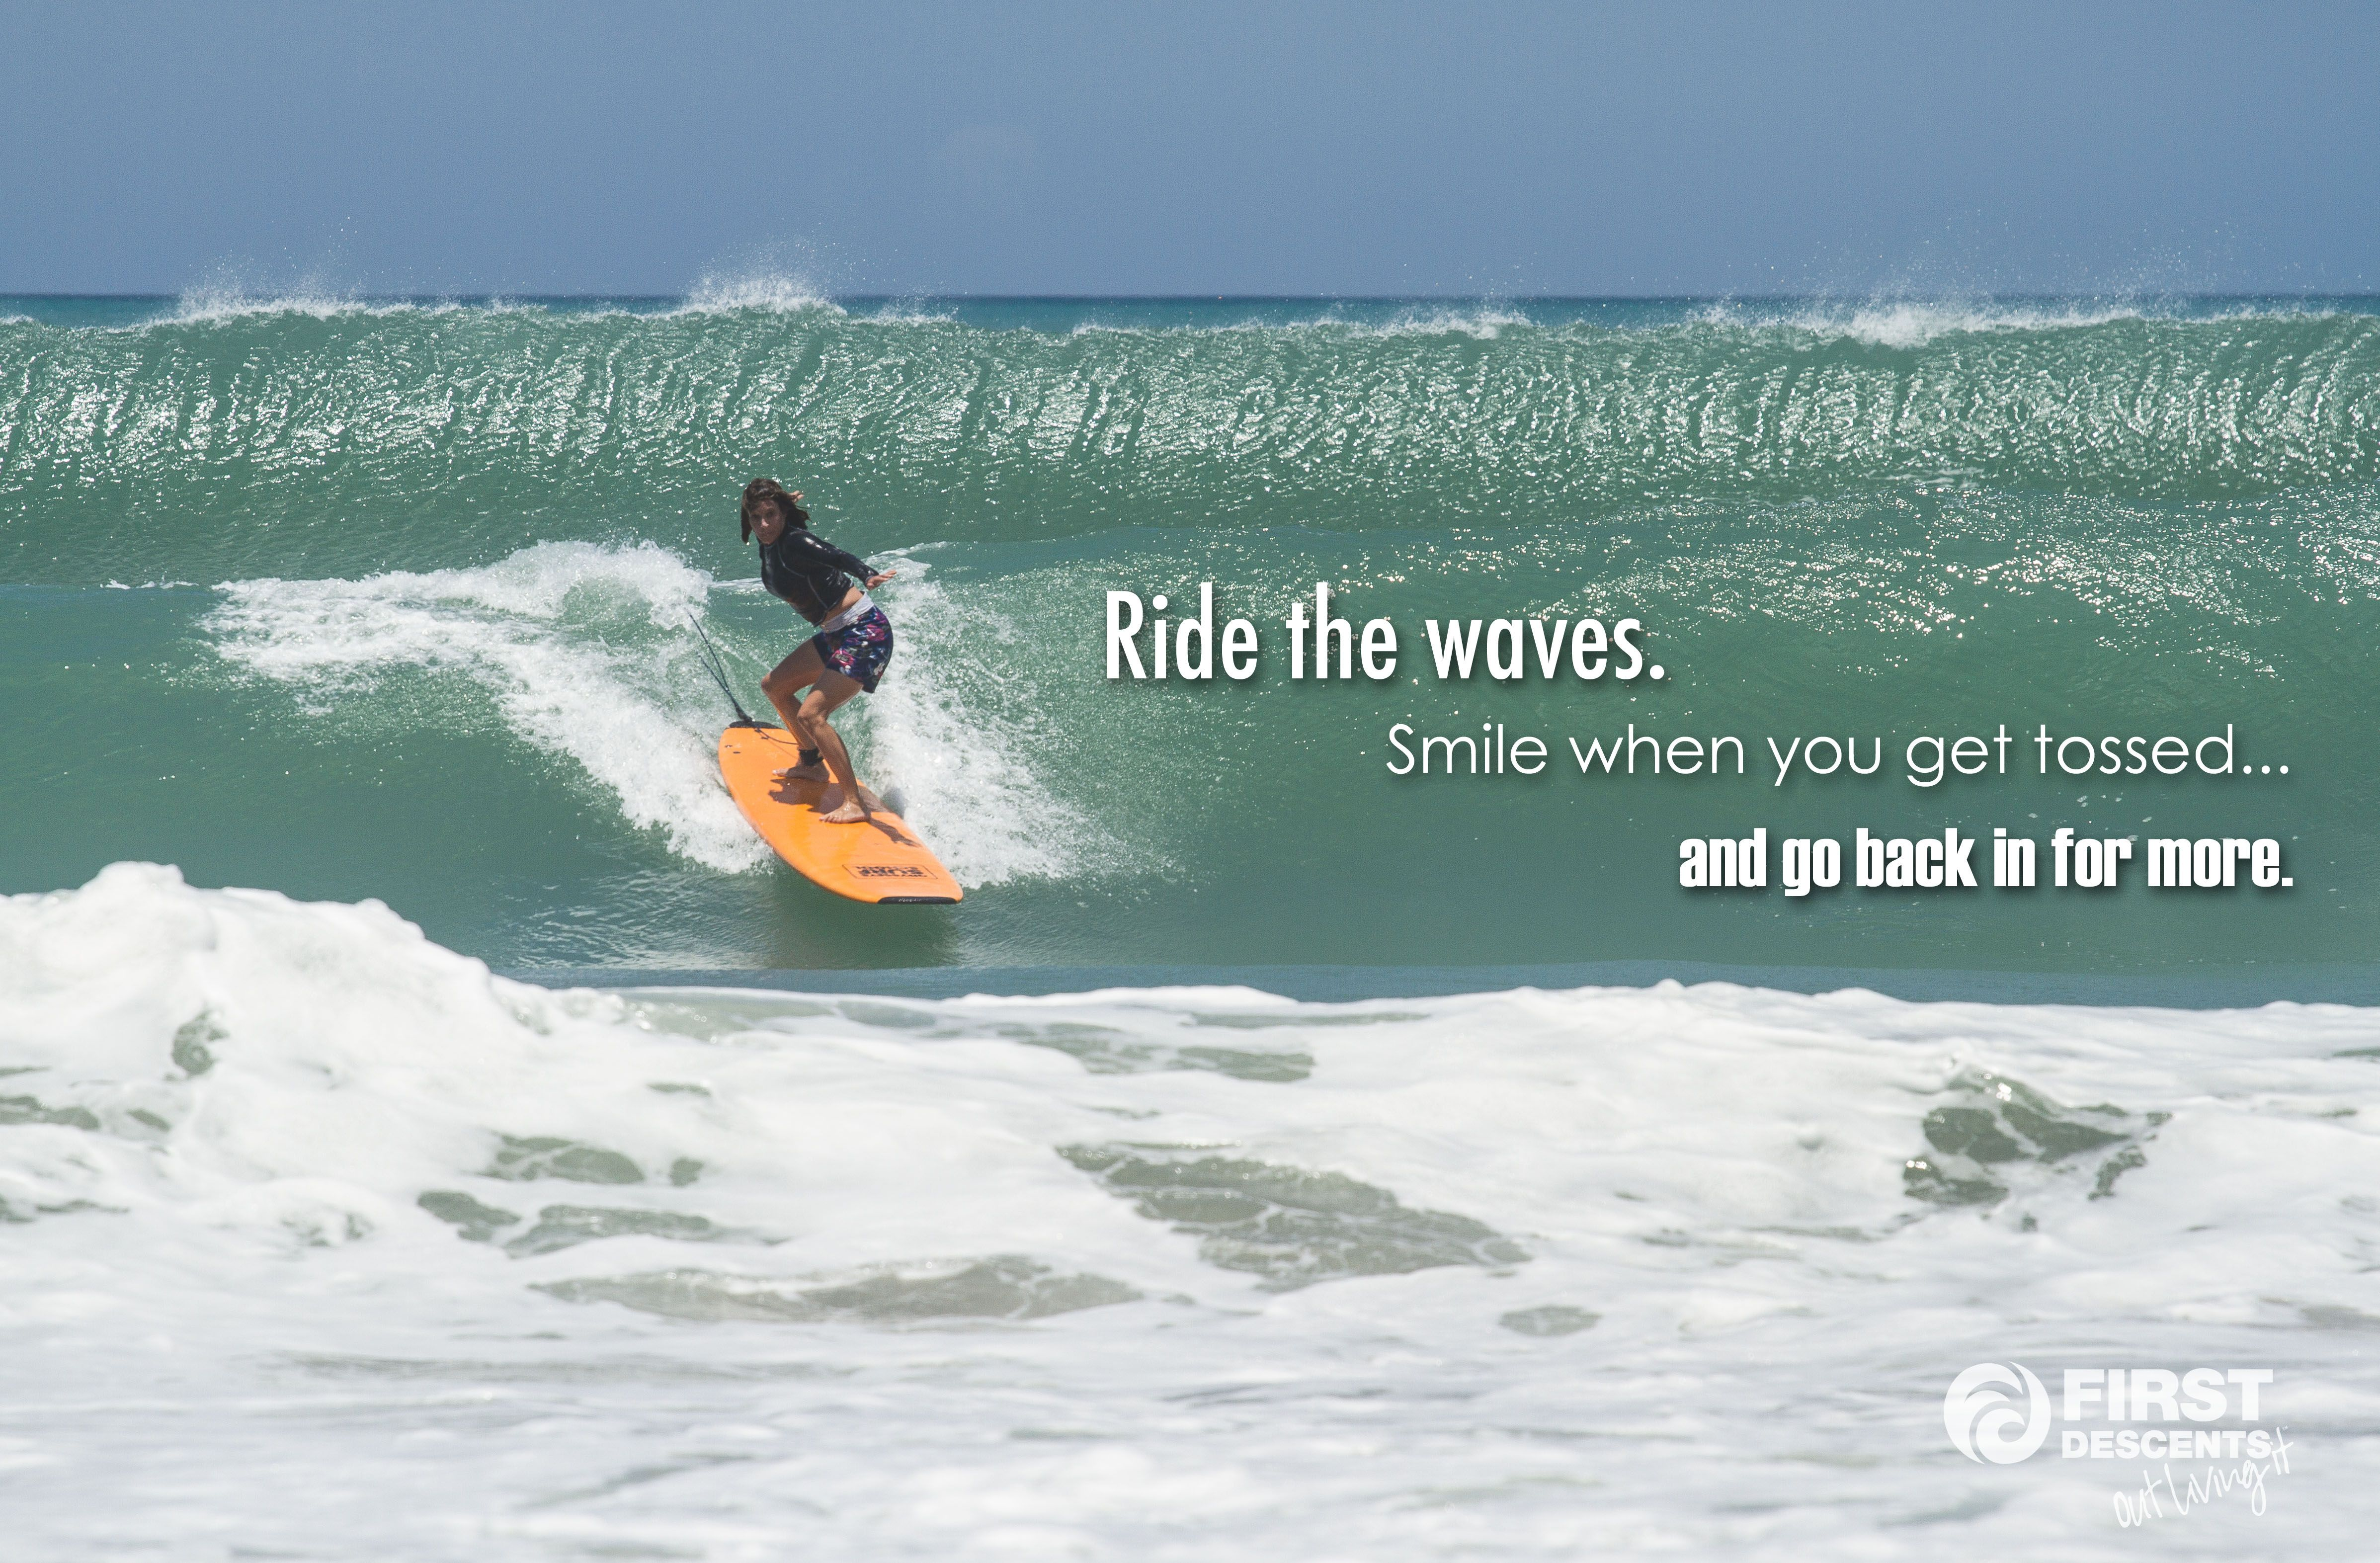 Ride The Wave Outlivingit Rad Surf Firstdescents Waves Riding Surfing